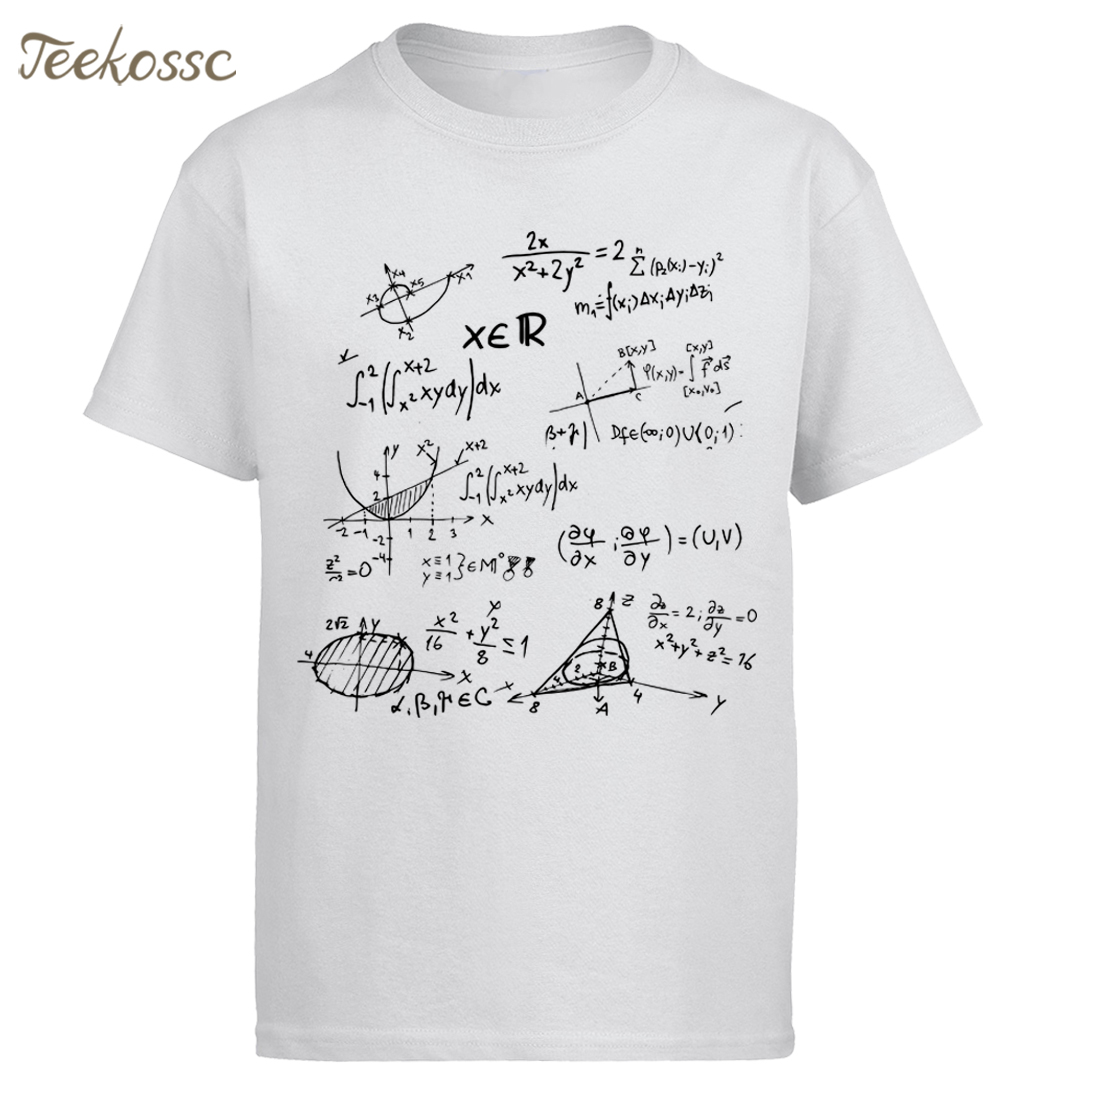 White   T     Shirt   Math Formulas Science   Shirt   Men 2018 Summer 100% Cotton   T  -  Shirt   Man O-neck Slim Fit   T  -  shirt   Fashion Men's Tops Tee